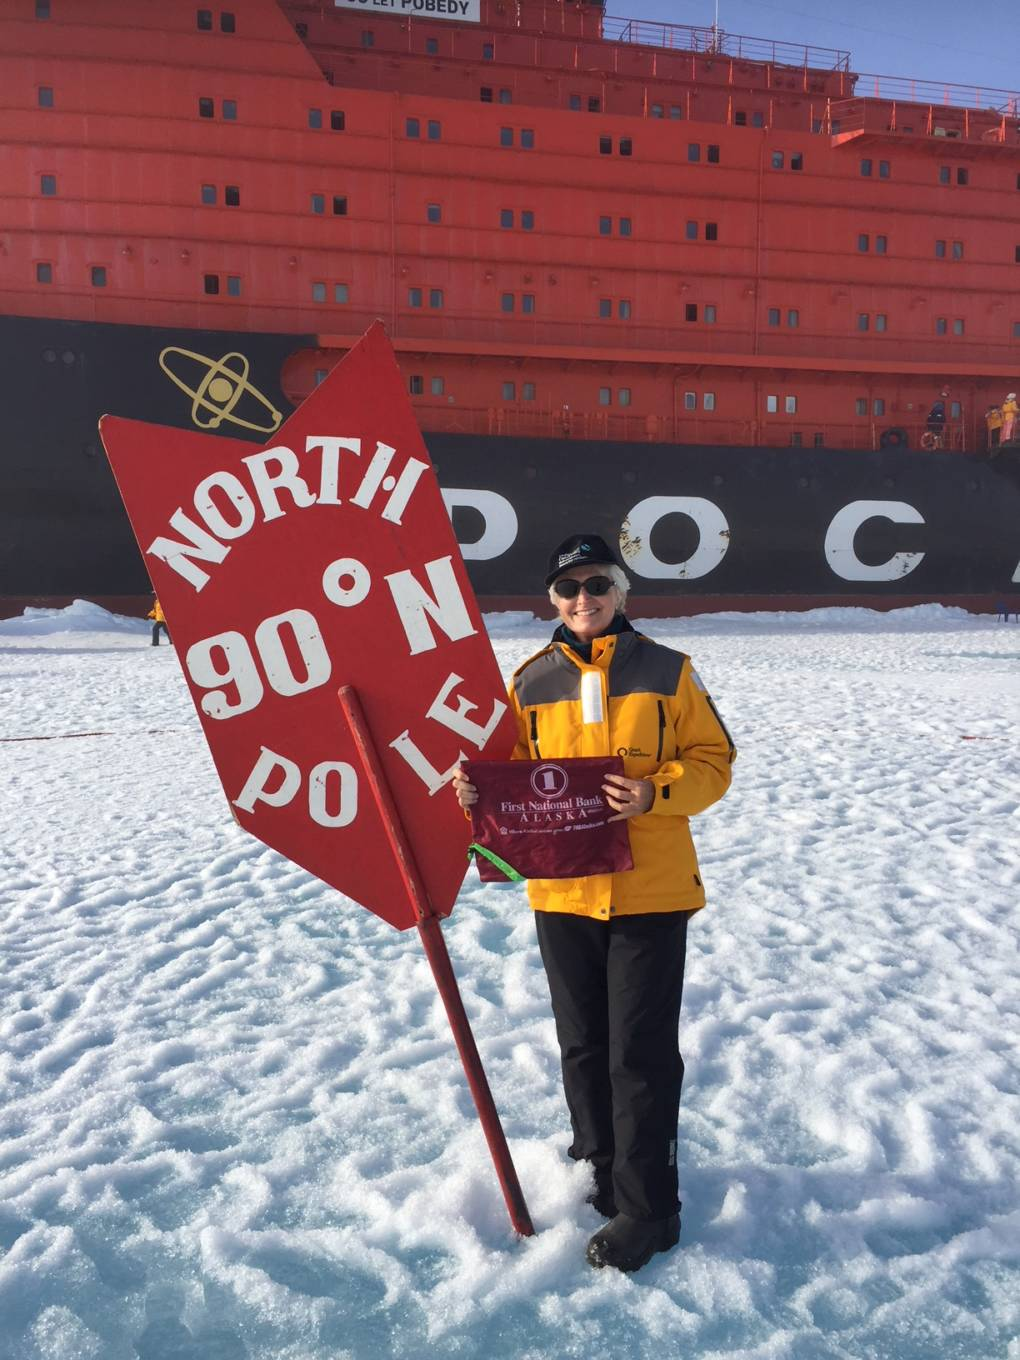 A woman stands next to a sign reading 'North Pole'.